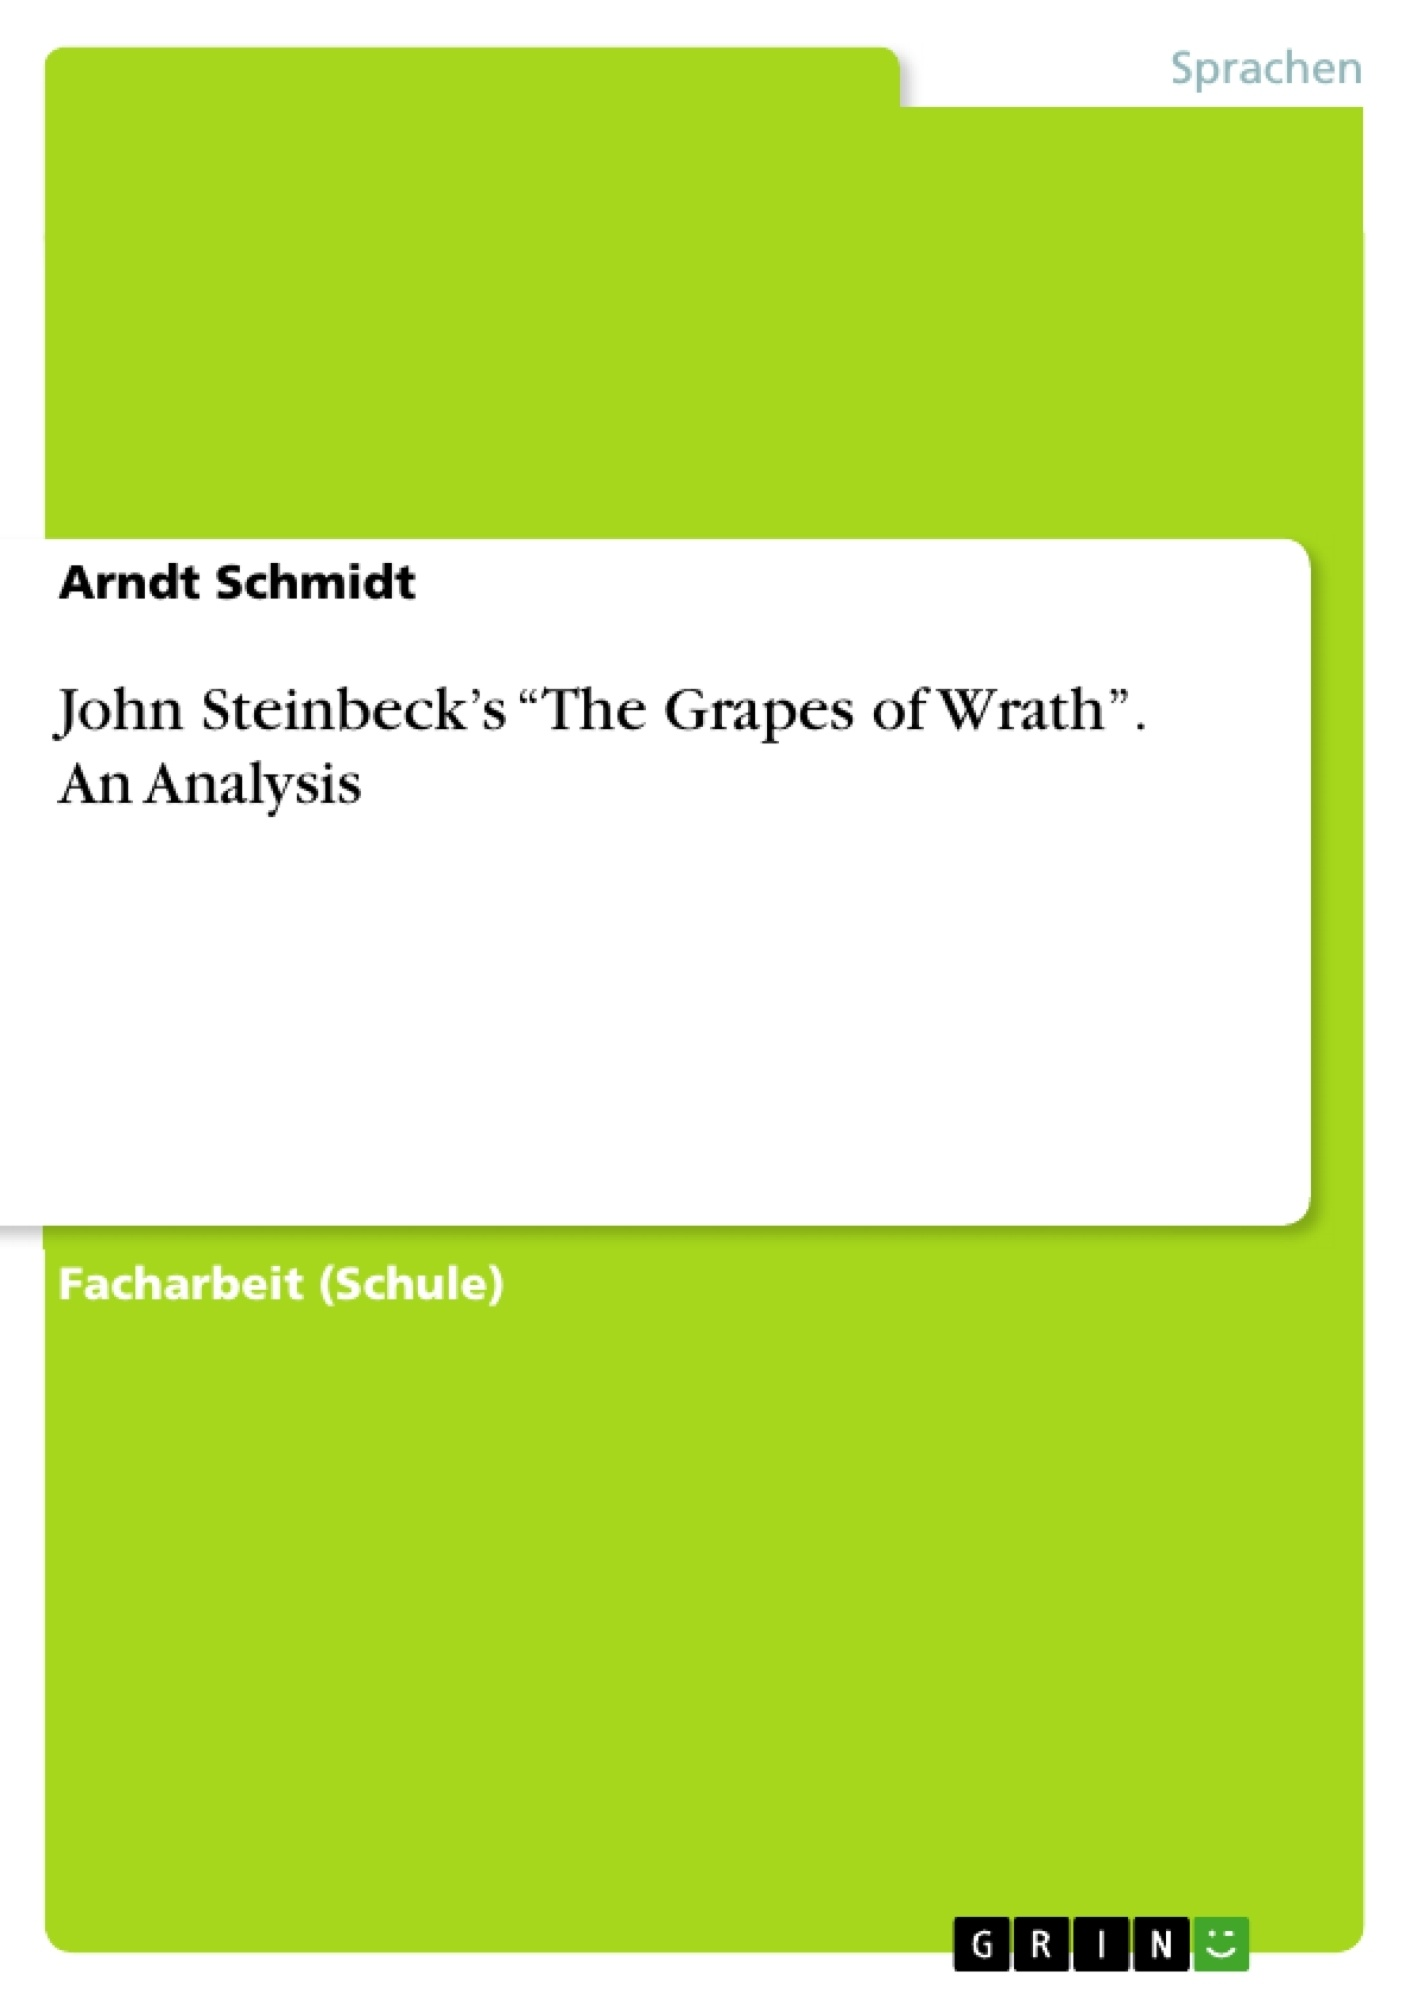 an analysis of the novel the grape of wrath by john steinbeck Published in 1939, the grapes of wrath won the annual national book award and the pulitzer prize certainly it contributed towards john steinbeck's nobel prize in 1962 there are clear similarities between the grapes of wrath and his earlier, and perhaps most famous, novel, of mice and men, both of which carry a social context and include.